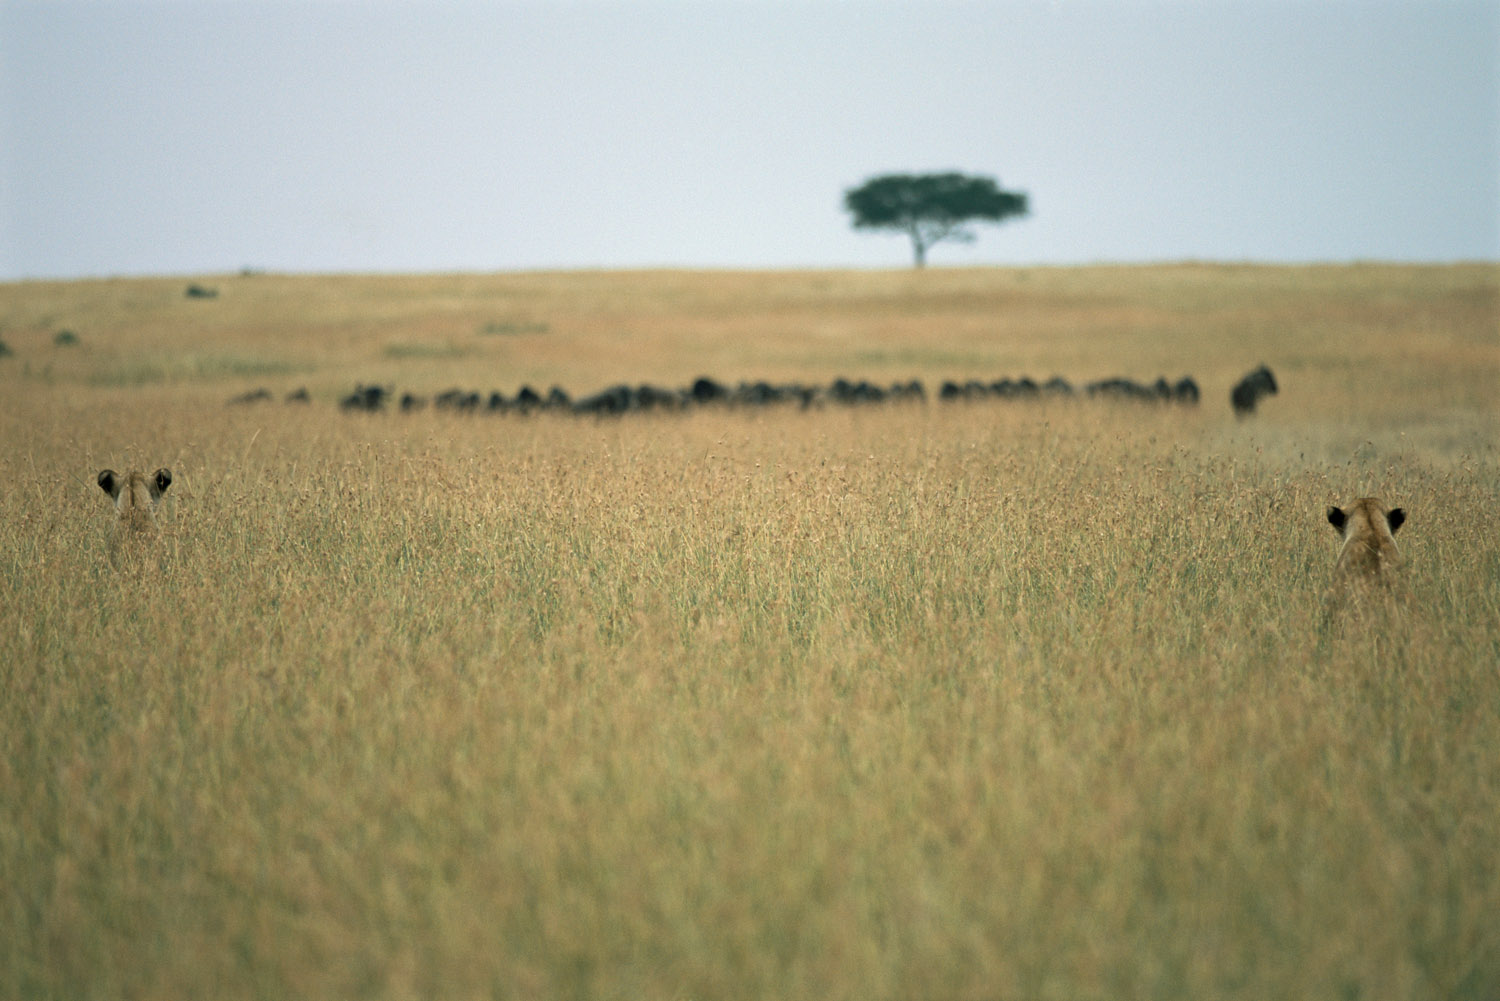 Lionesses watching wildebeest, Masai Mara National Reserve, Kenya